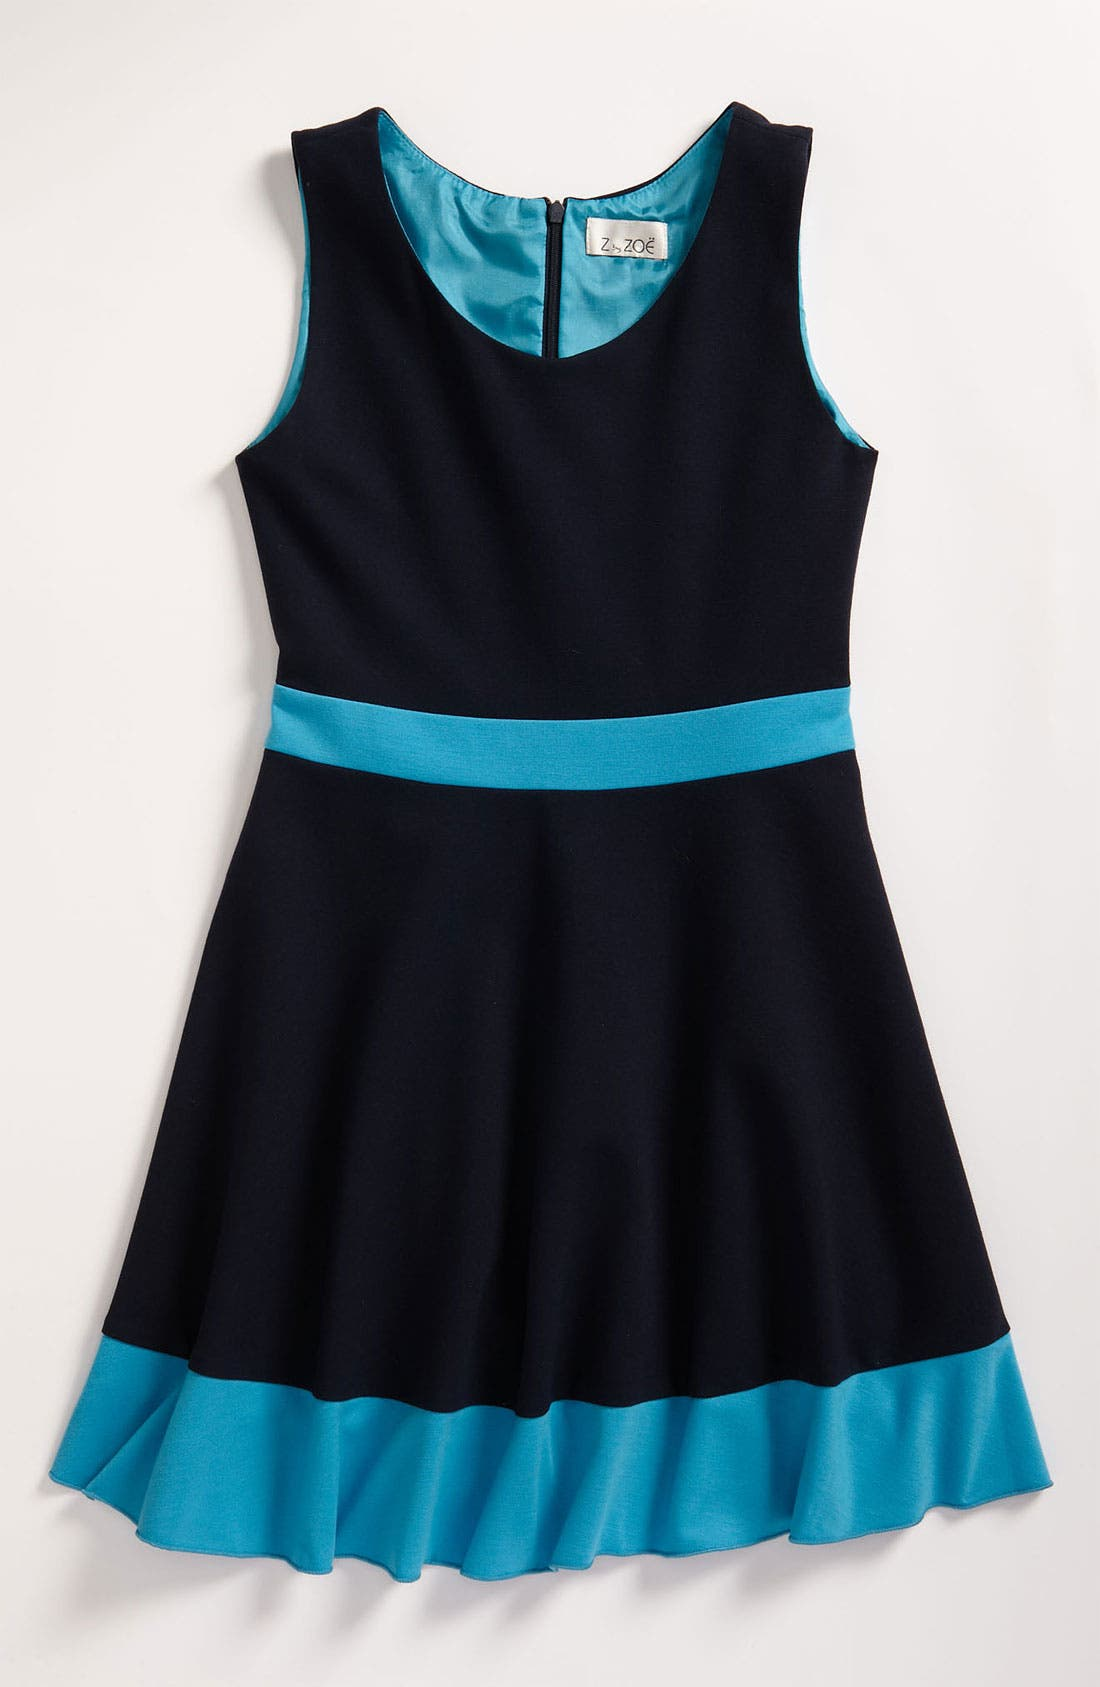 Main Image - Zoe Ltd Colorblock Tank Dress (Big Girls)